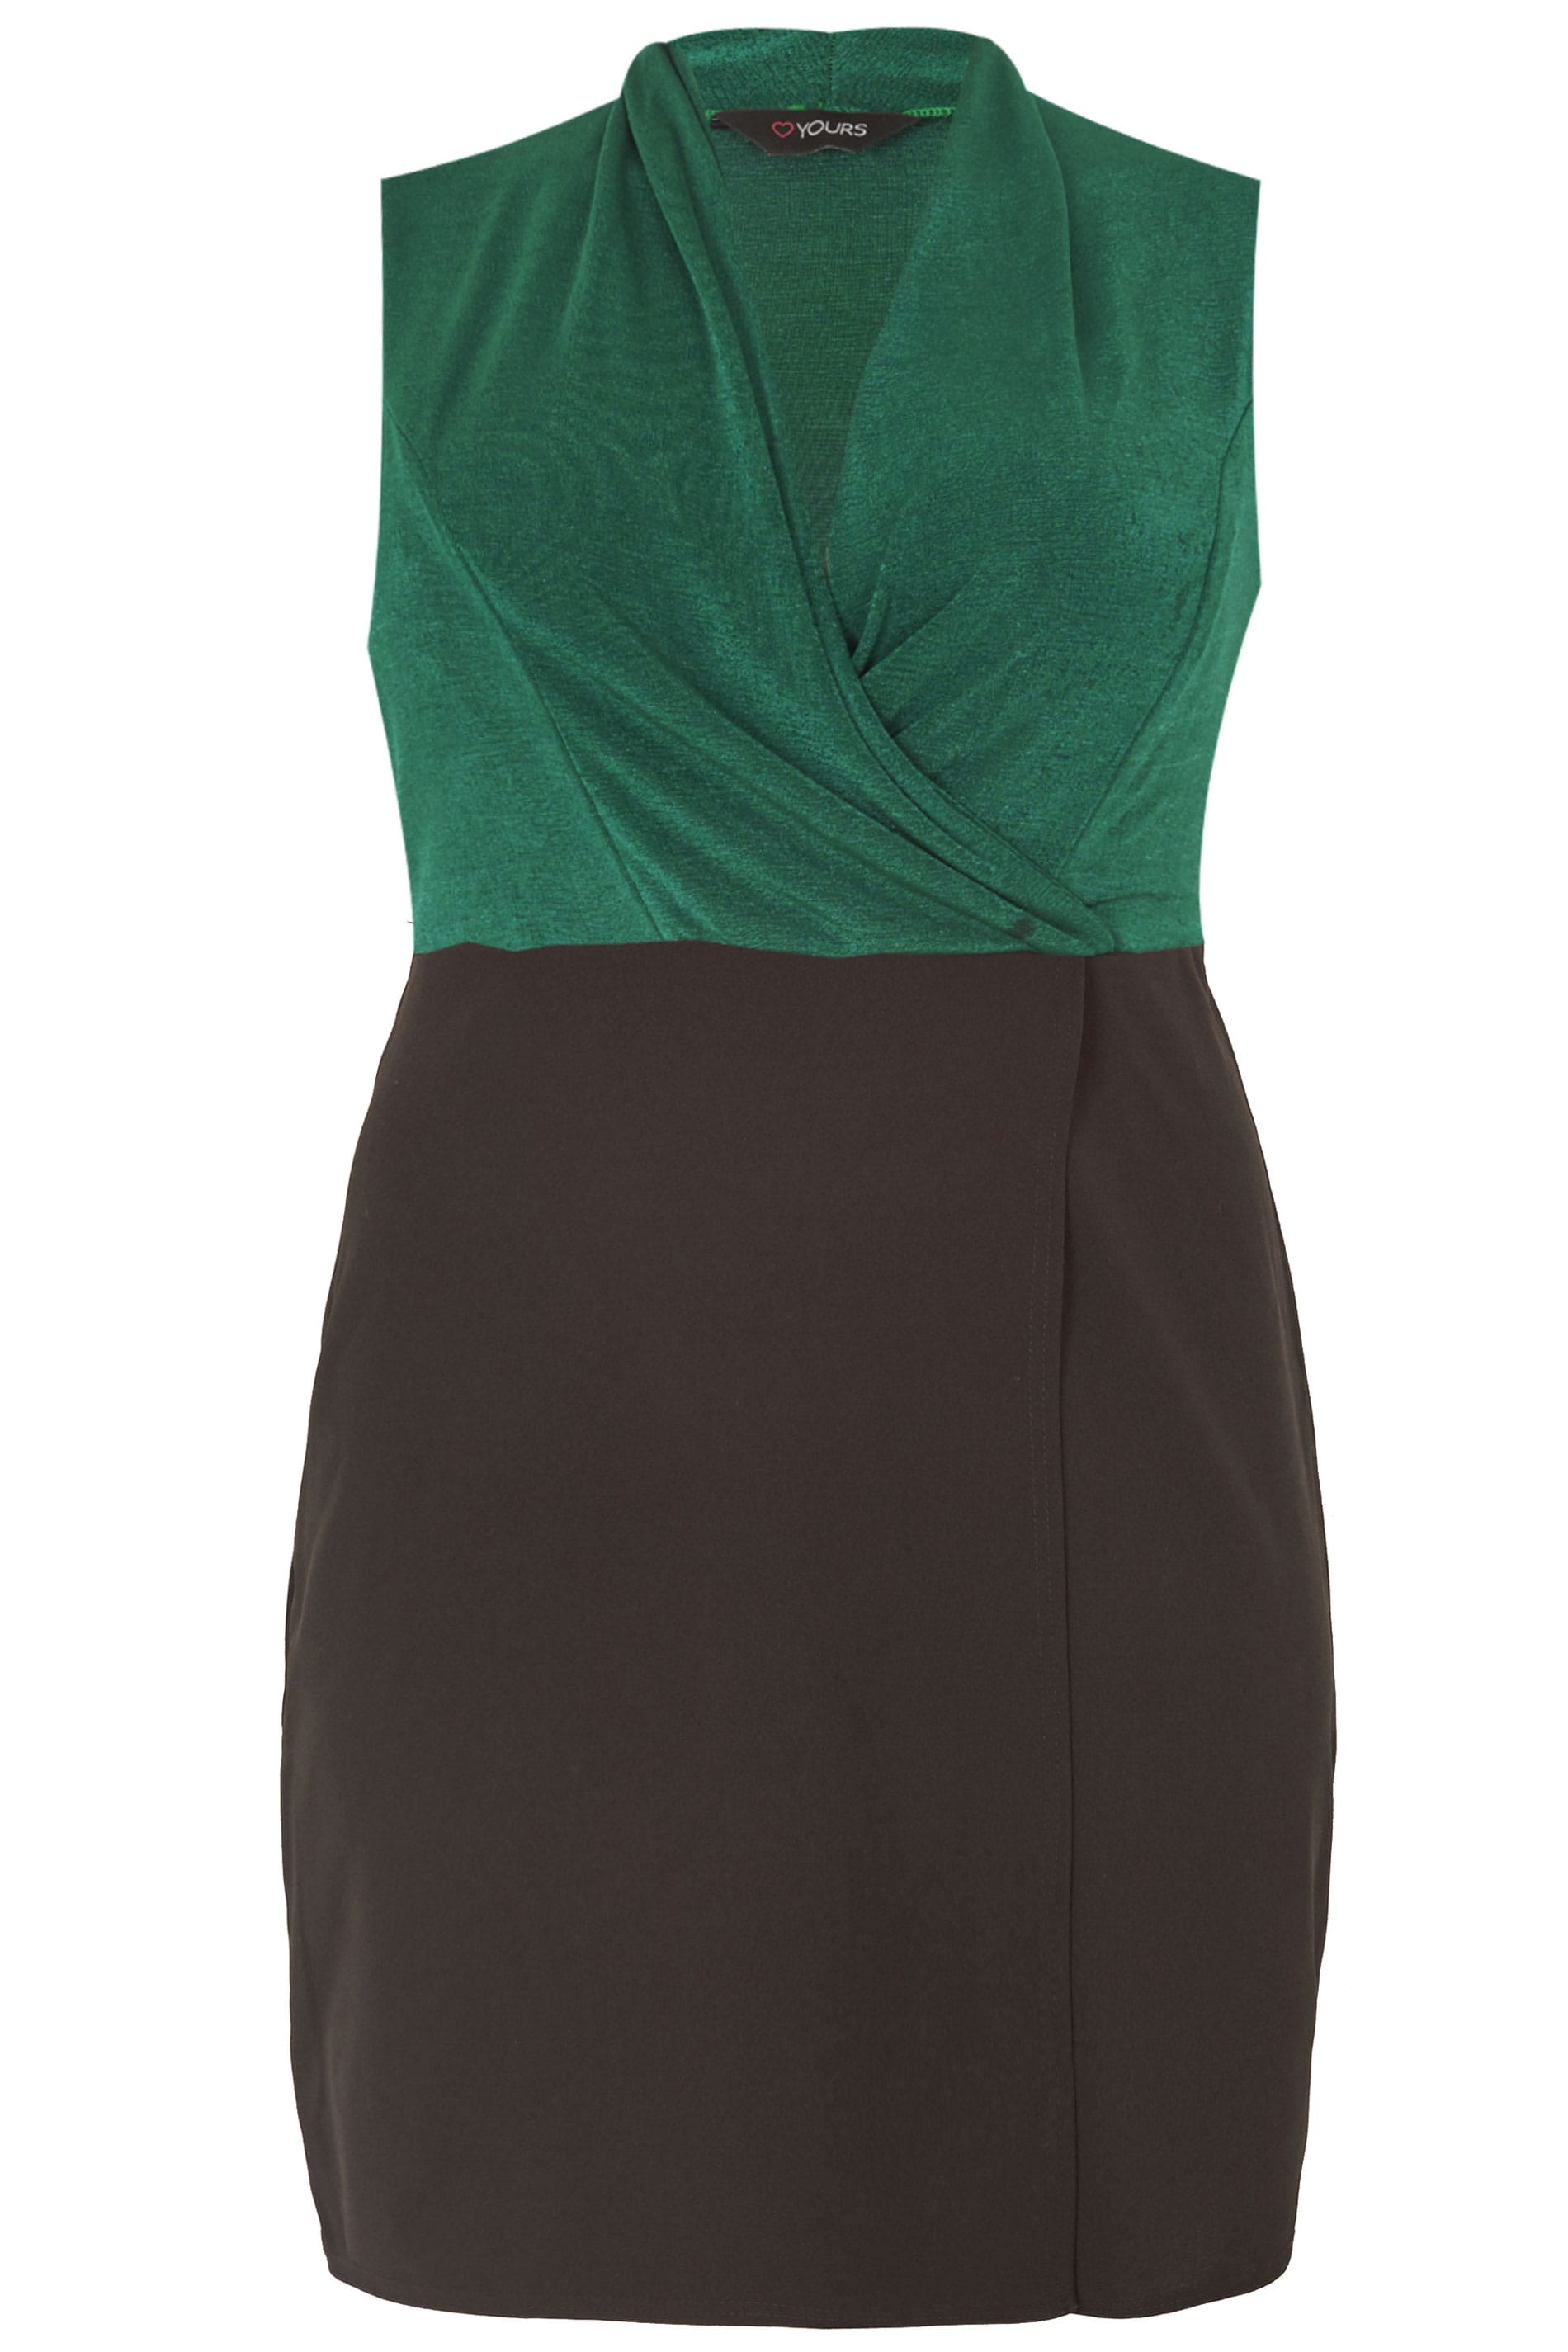 99f7317789a Plus Size Black   Green Wrap Bodycon Dress